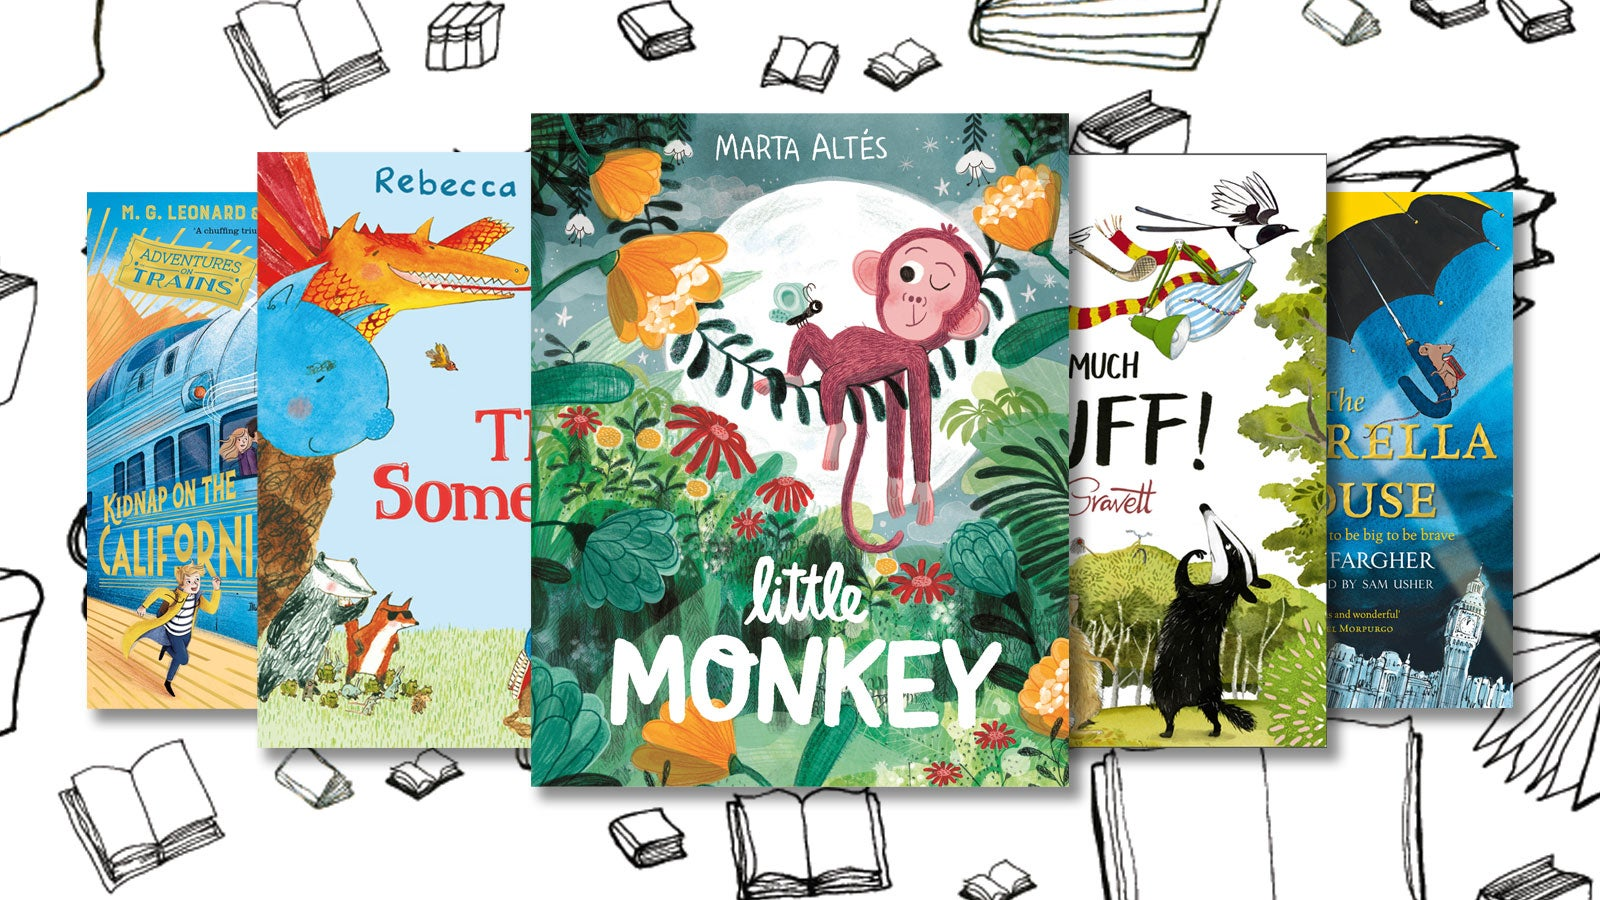 Book covers for Little Monkey, The Something, Too Much Stuff, The Umbrella Mouse and Kidnap on the California Comet, against a monochrome background of books